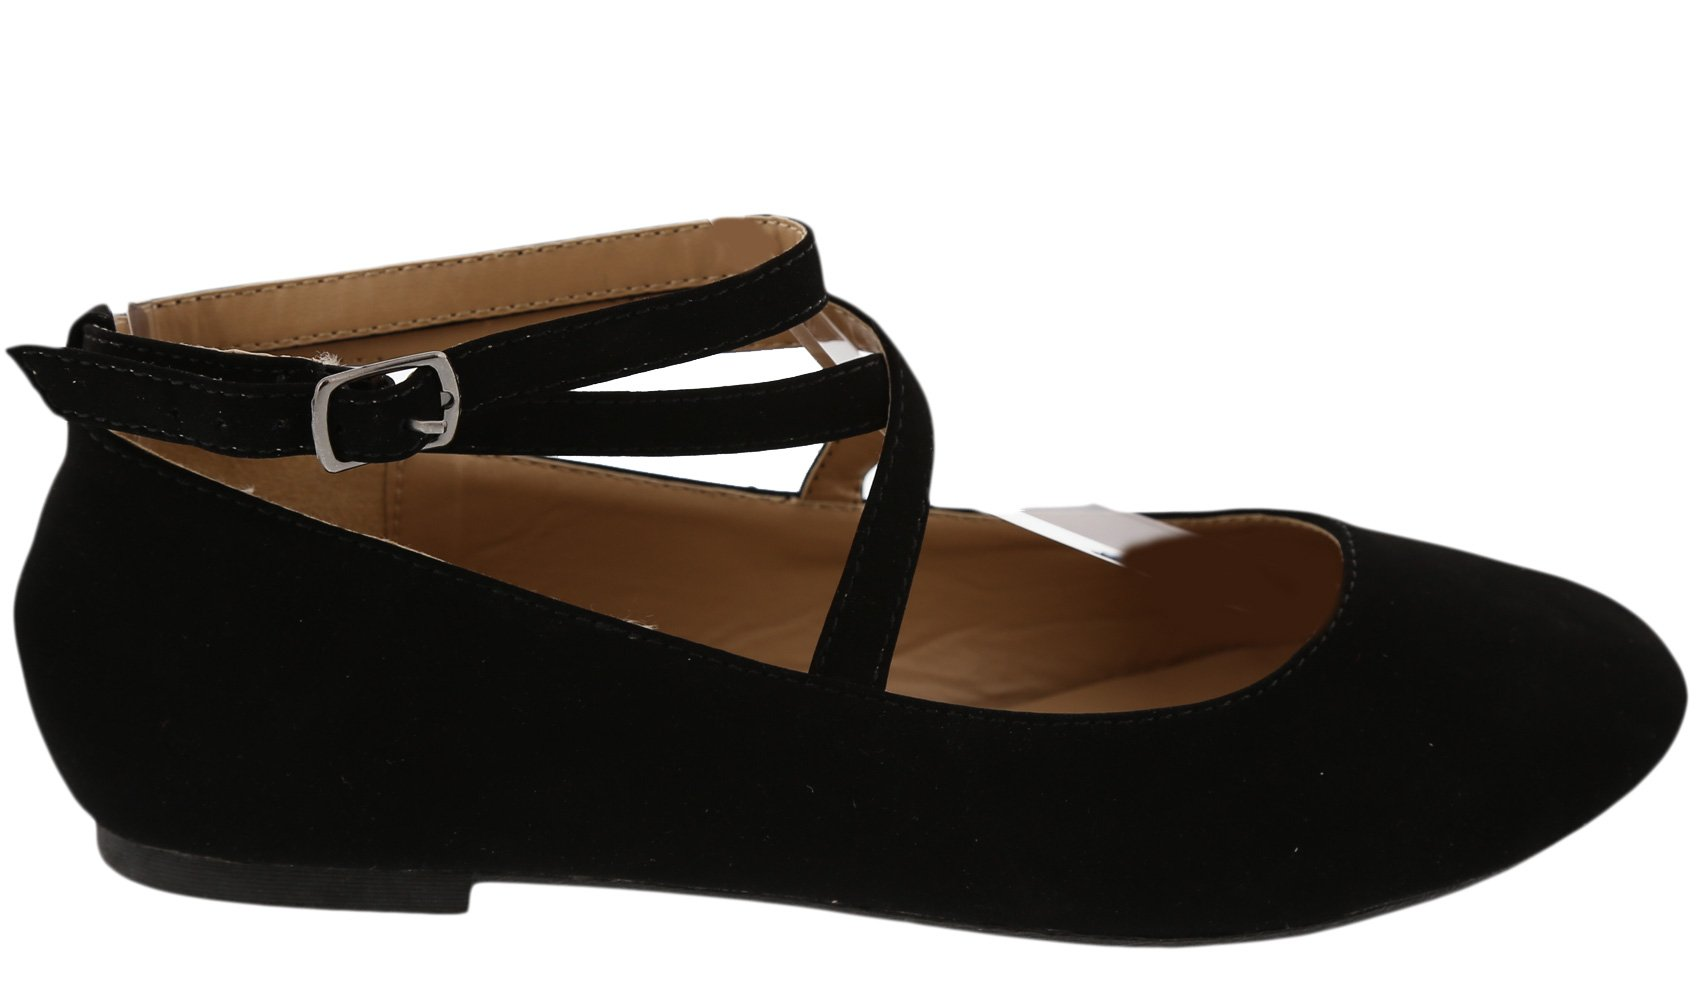 Top Moda Women's Brea-3 Strappy Ballet Flat (8 B(M) US, Black) by Top Moda (Image #3)